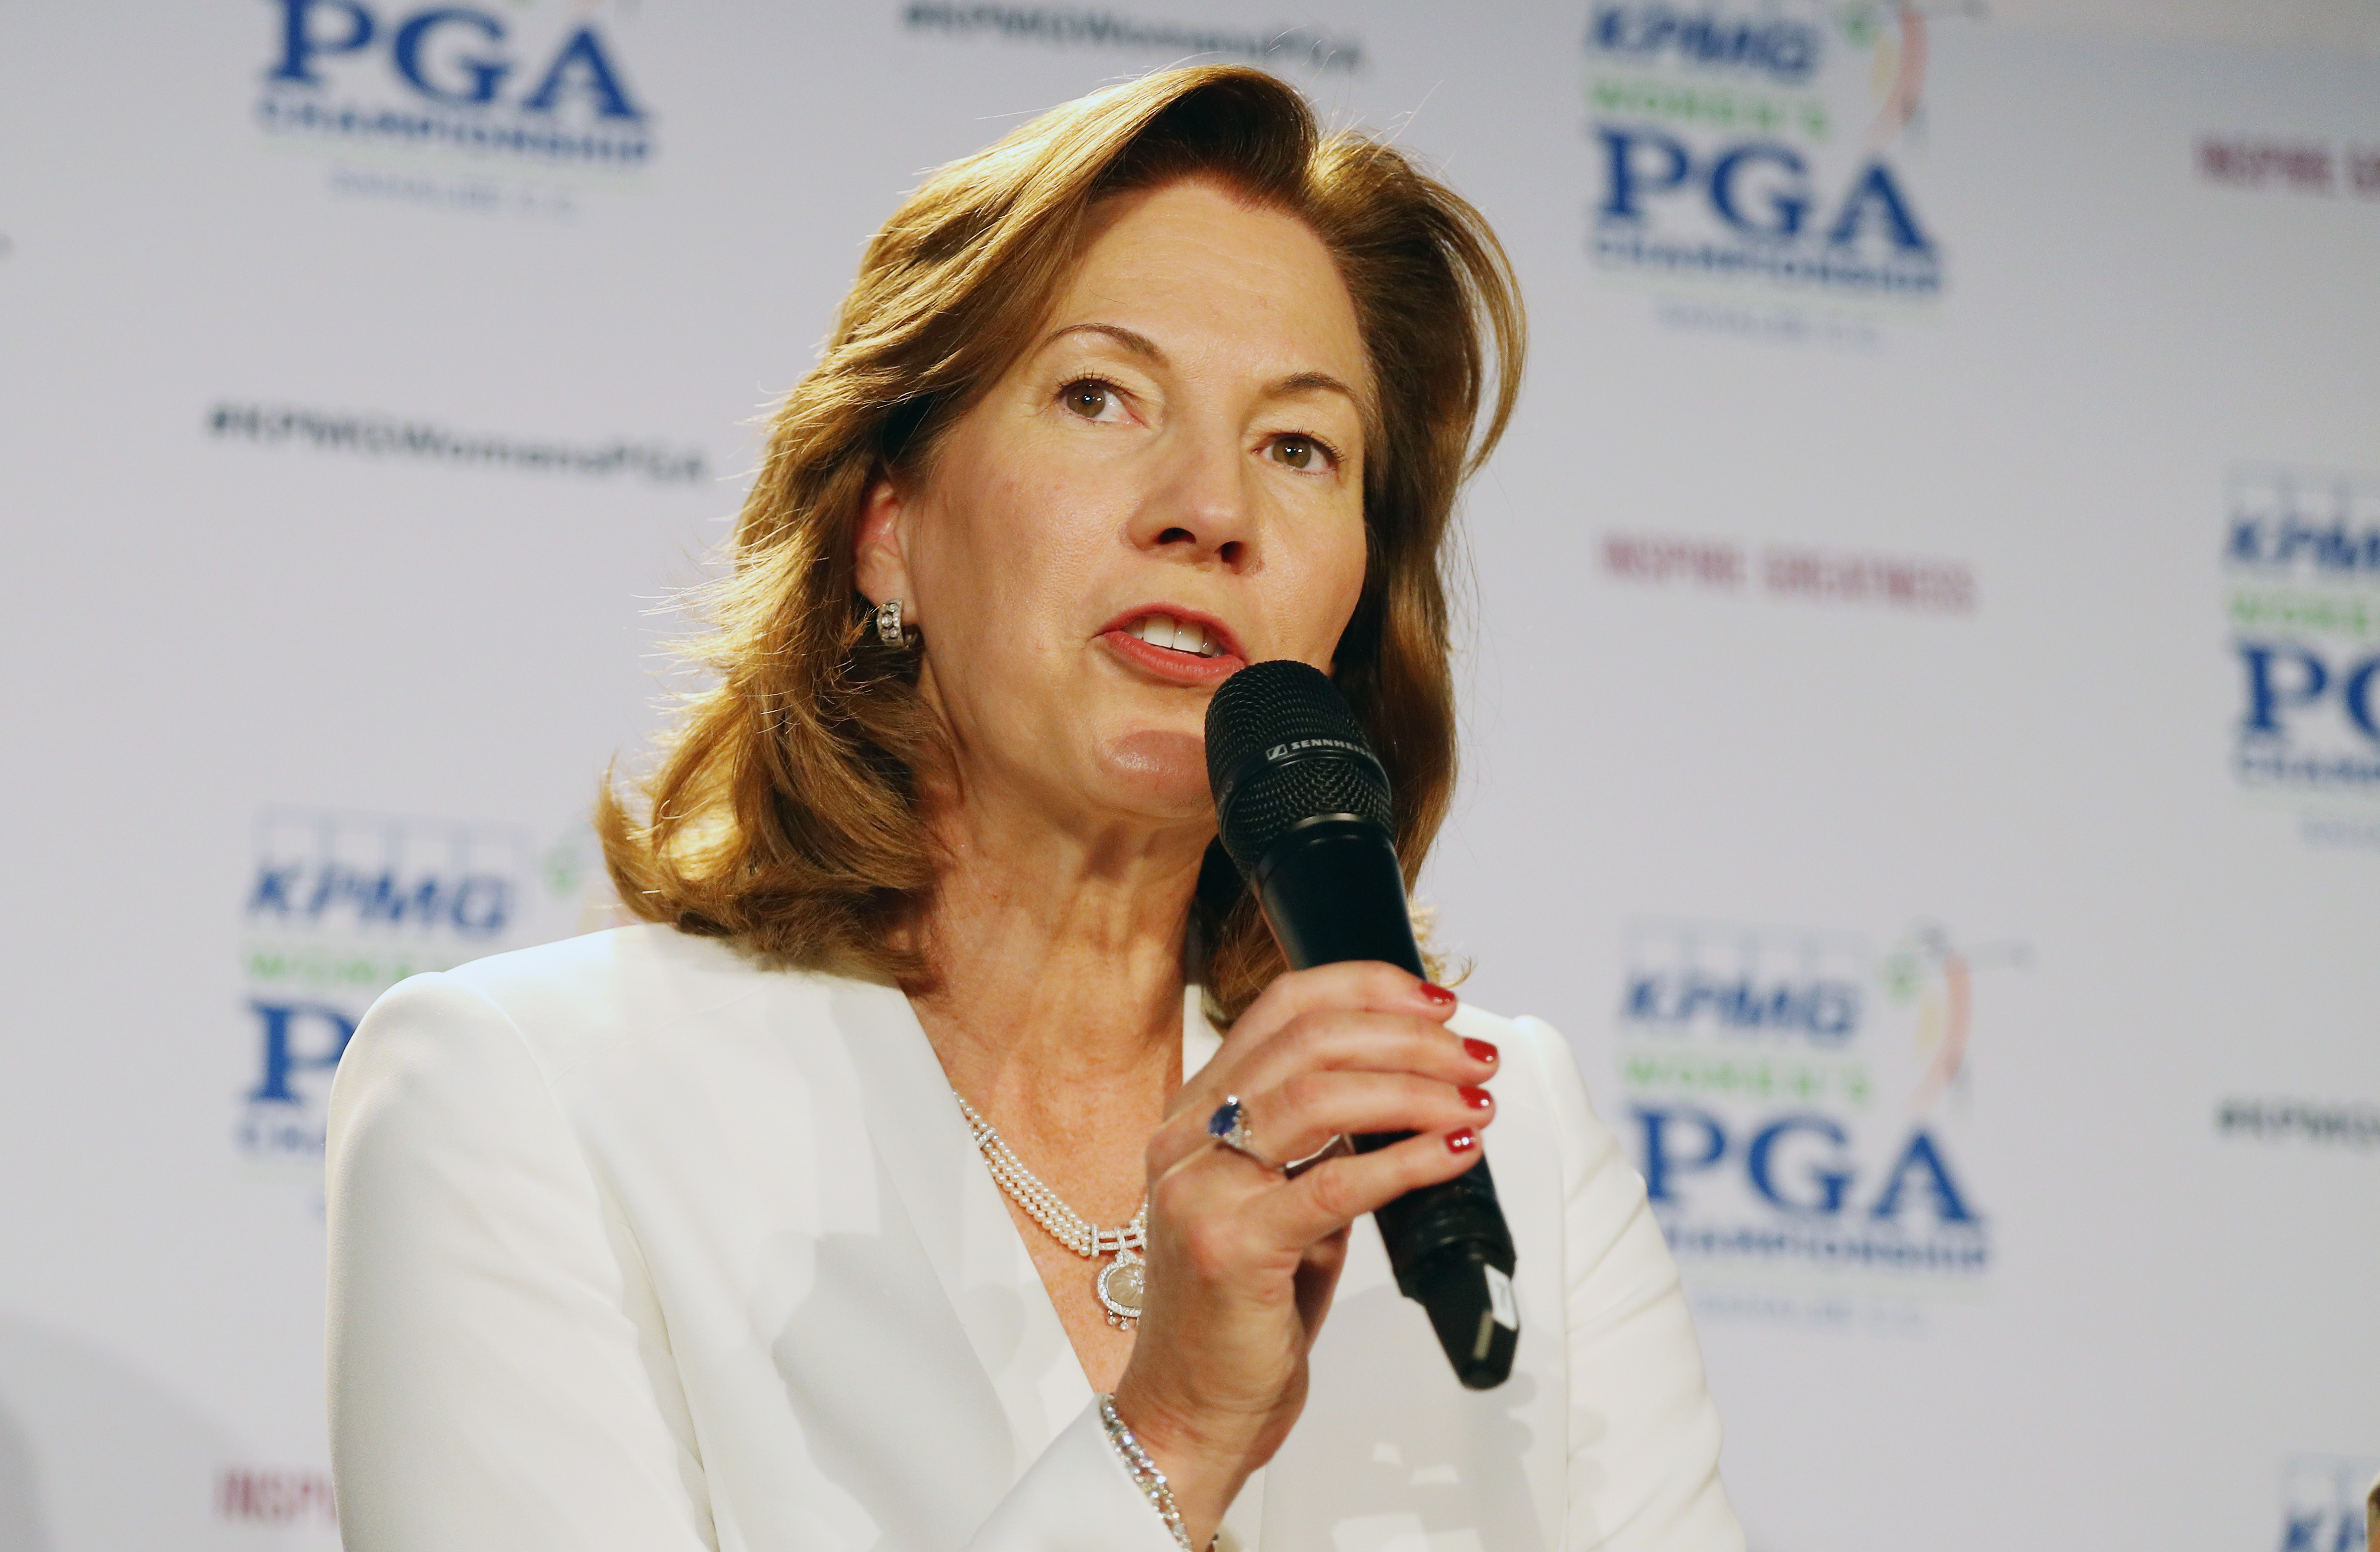 KPMG Women's PGA Championship - Preview Day 2